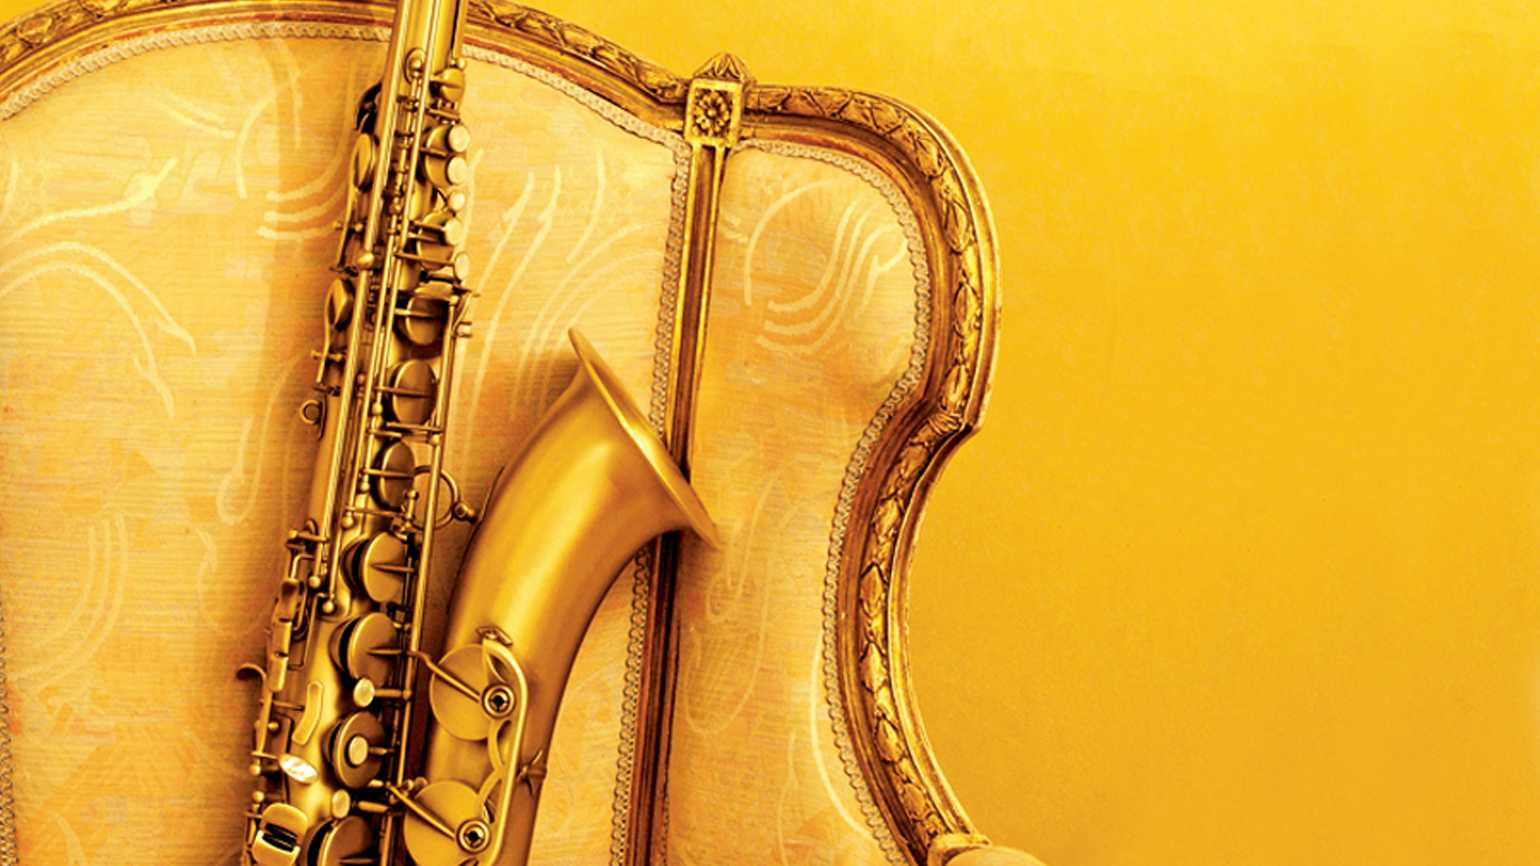 A heavy saxophone in a brilliant gold chair.